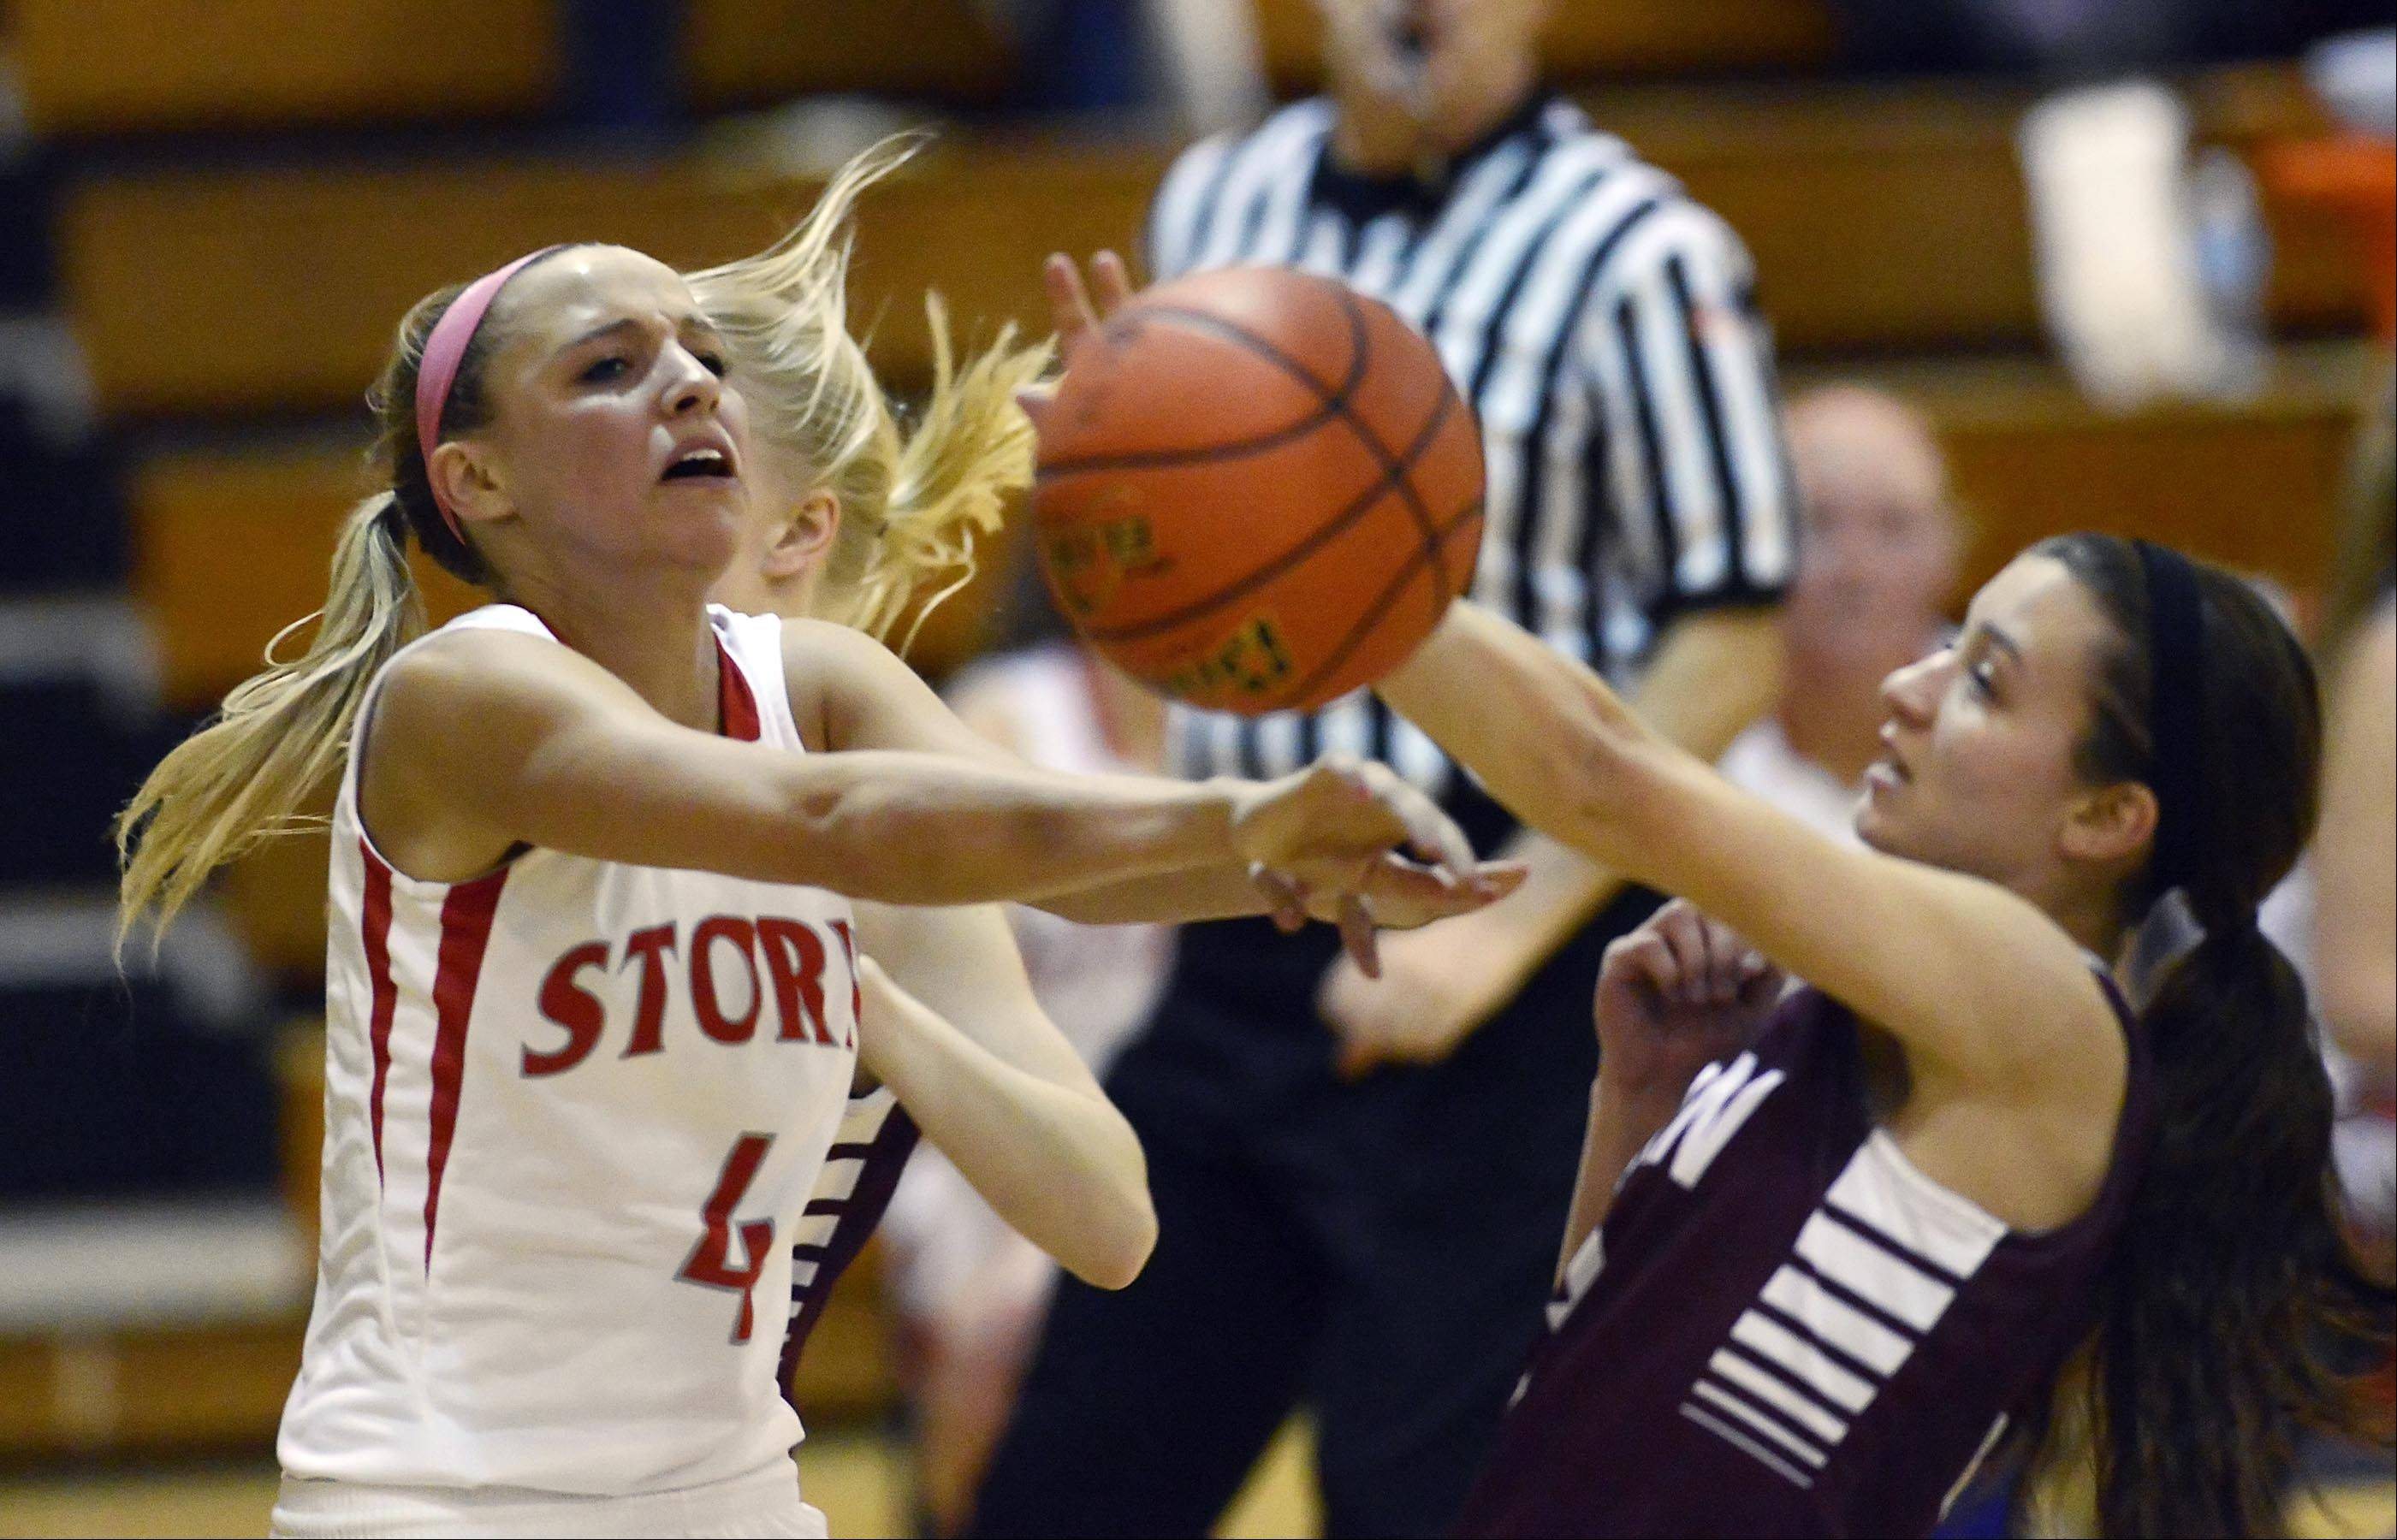 Elgin's Maggie Powers and South Elgin's Savanah Uveges collide as Uveges drives to the basket.